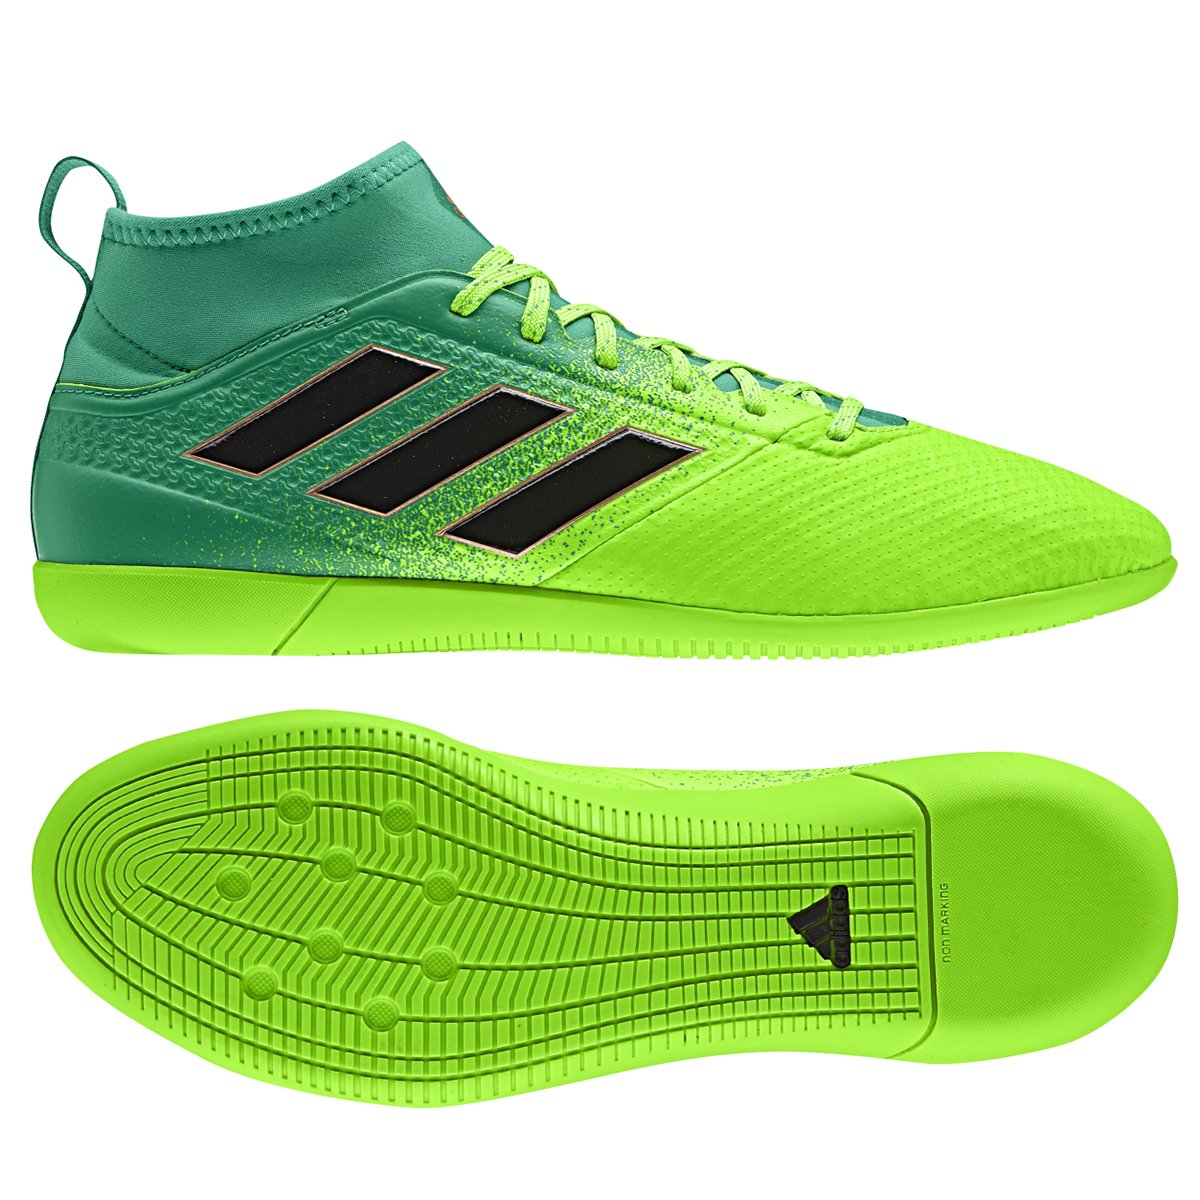 ca71107f9ef29 Chuteira Futsal Adidas Ace 17.3 IN | Allianz Parque Shop